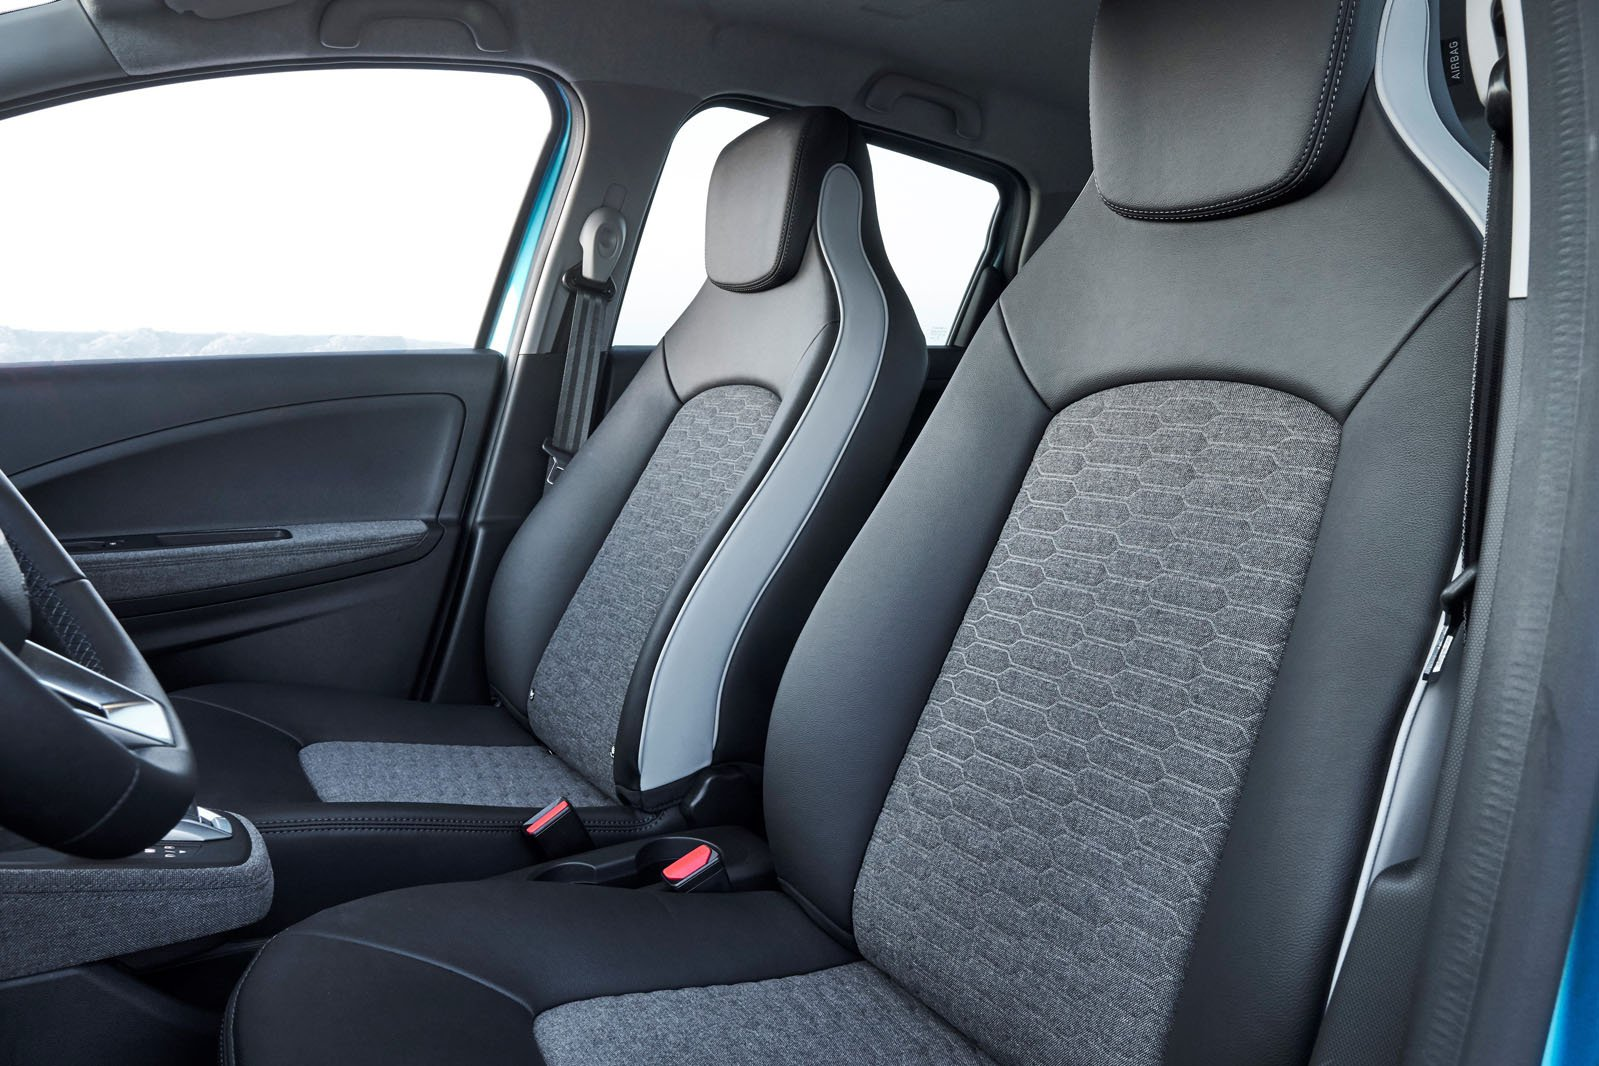 Renault Zoe 2019 LHD front seats